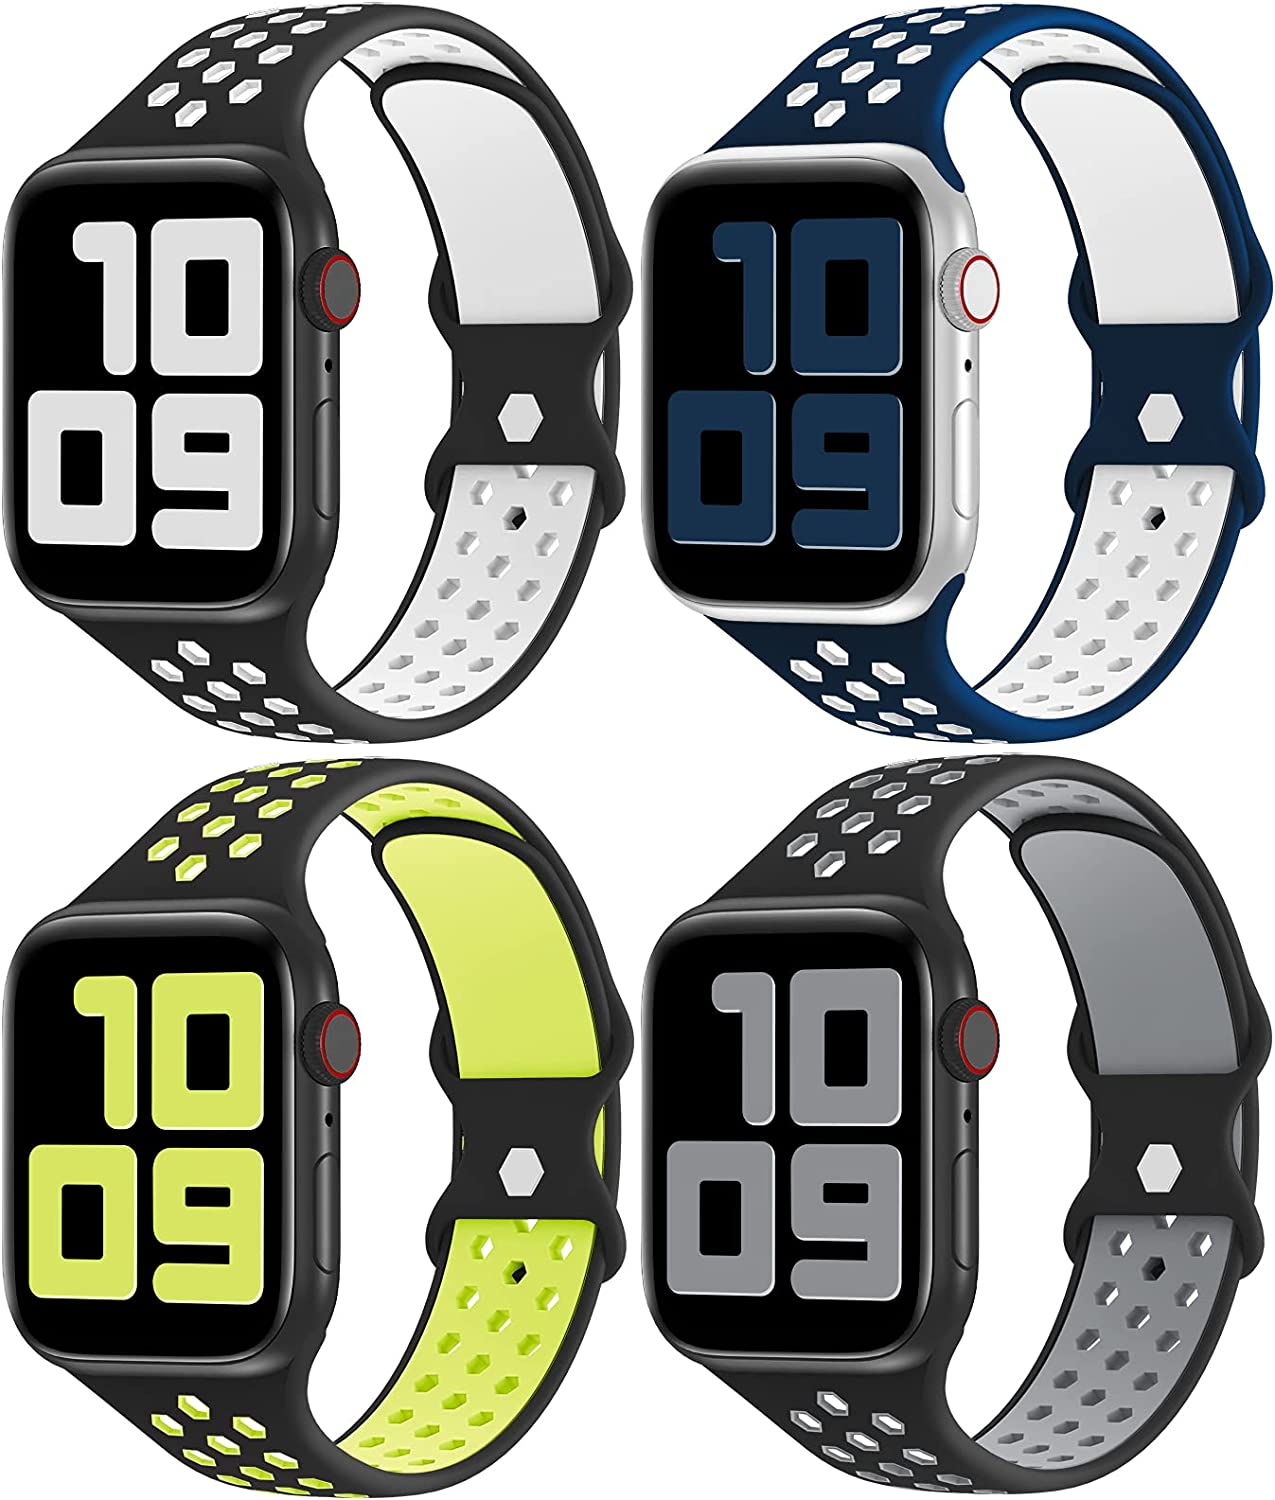 YAXIN 4 Pack Sport Bands Compatible with Apple Watch Bands 44mm 42mm 40mm 38mm for Women Men,Breathable Durable Soft Silicone Replacement Strap Band for Apple Watch SE iWatch Series /6/5/4/3/2/1